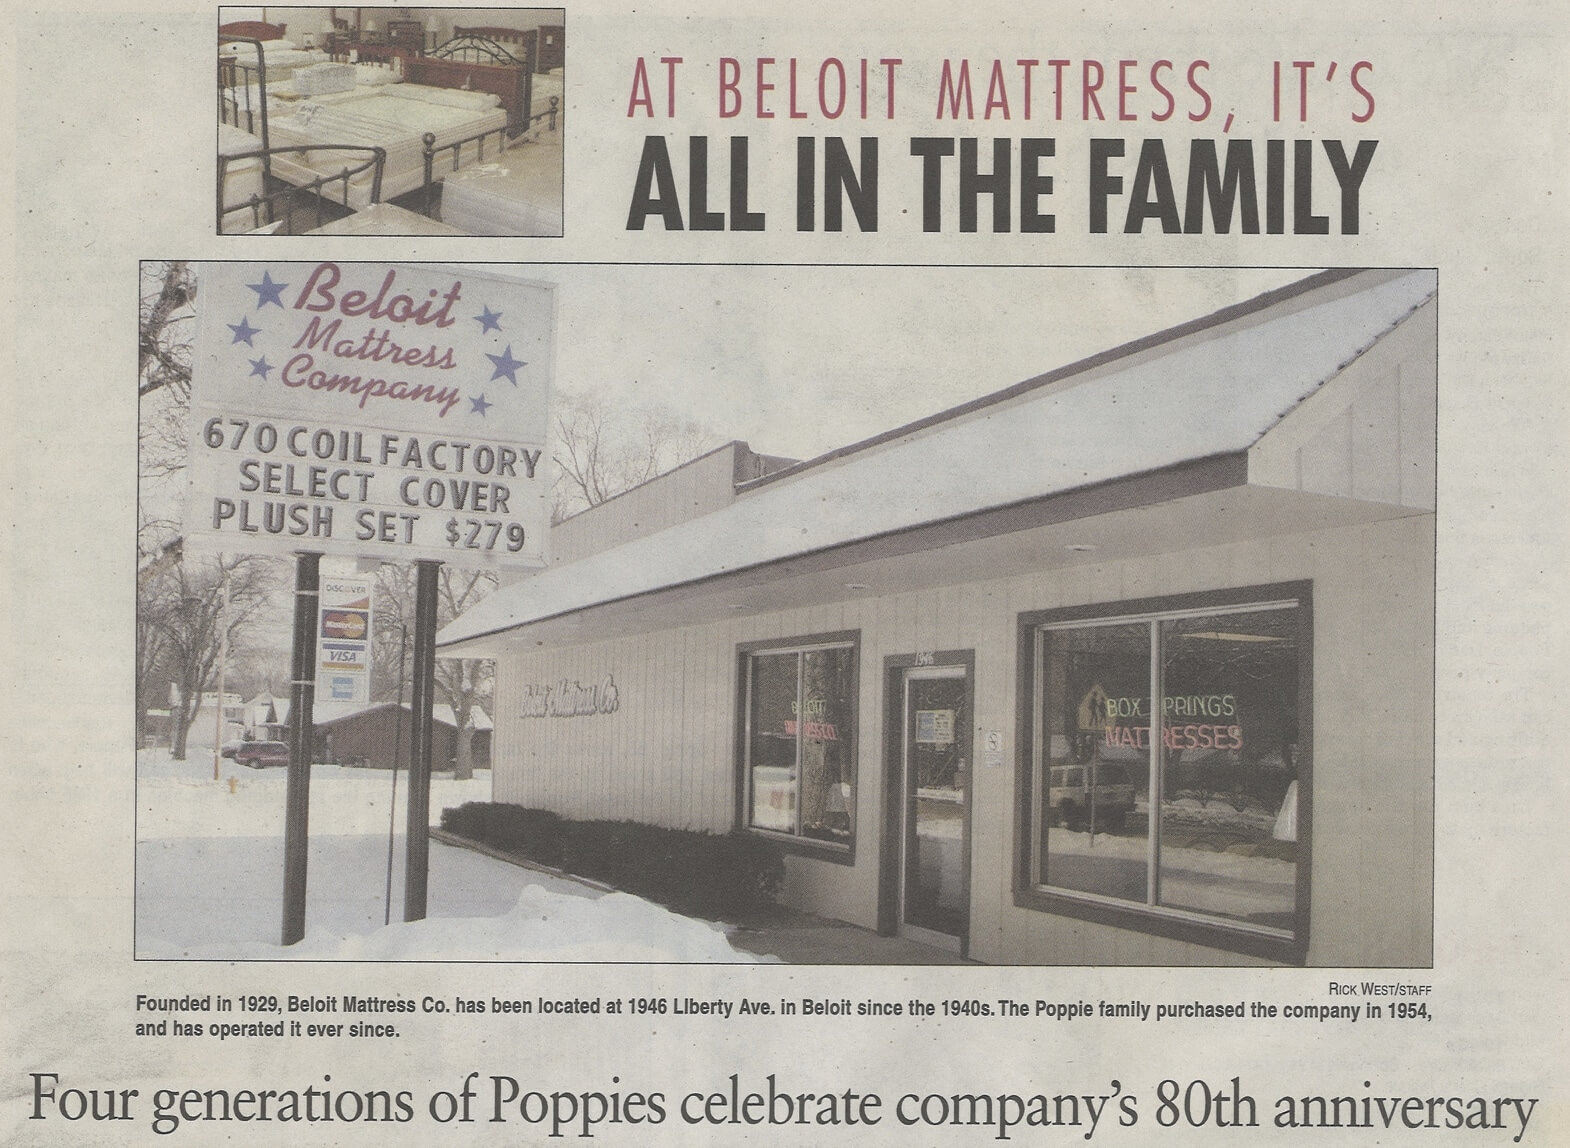 Beloit Mattress Company is one of the best wholesale mattress distributors in the Midwest